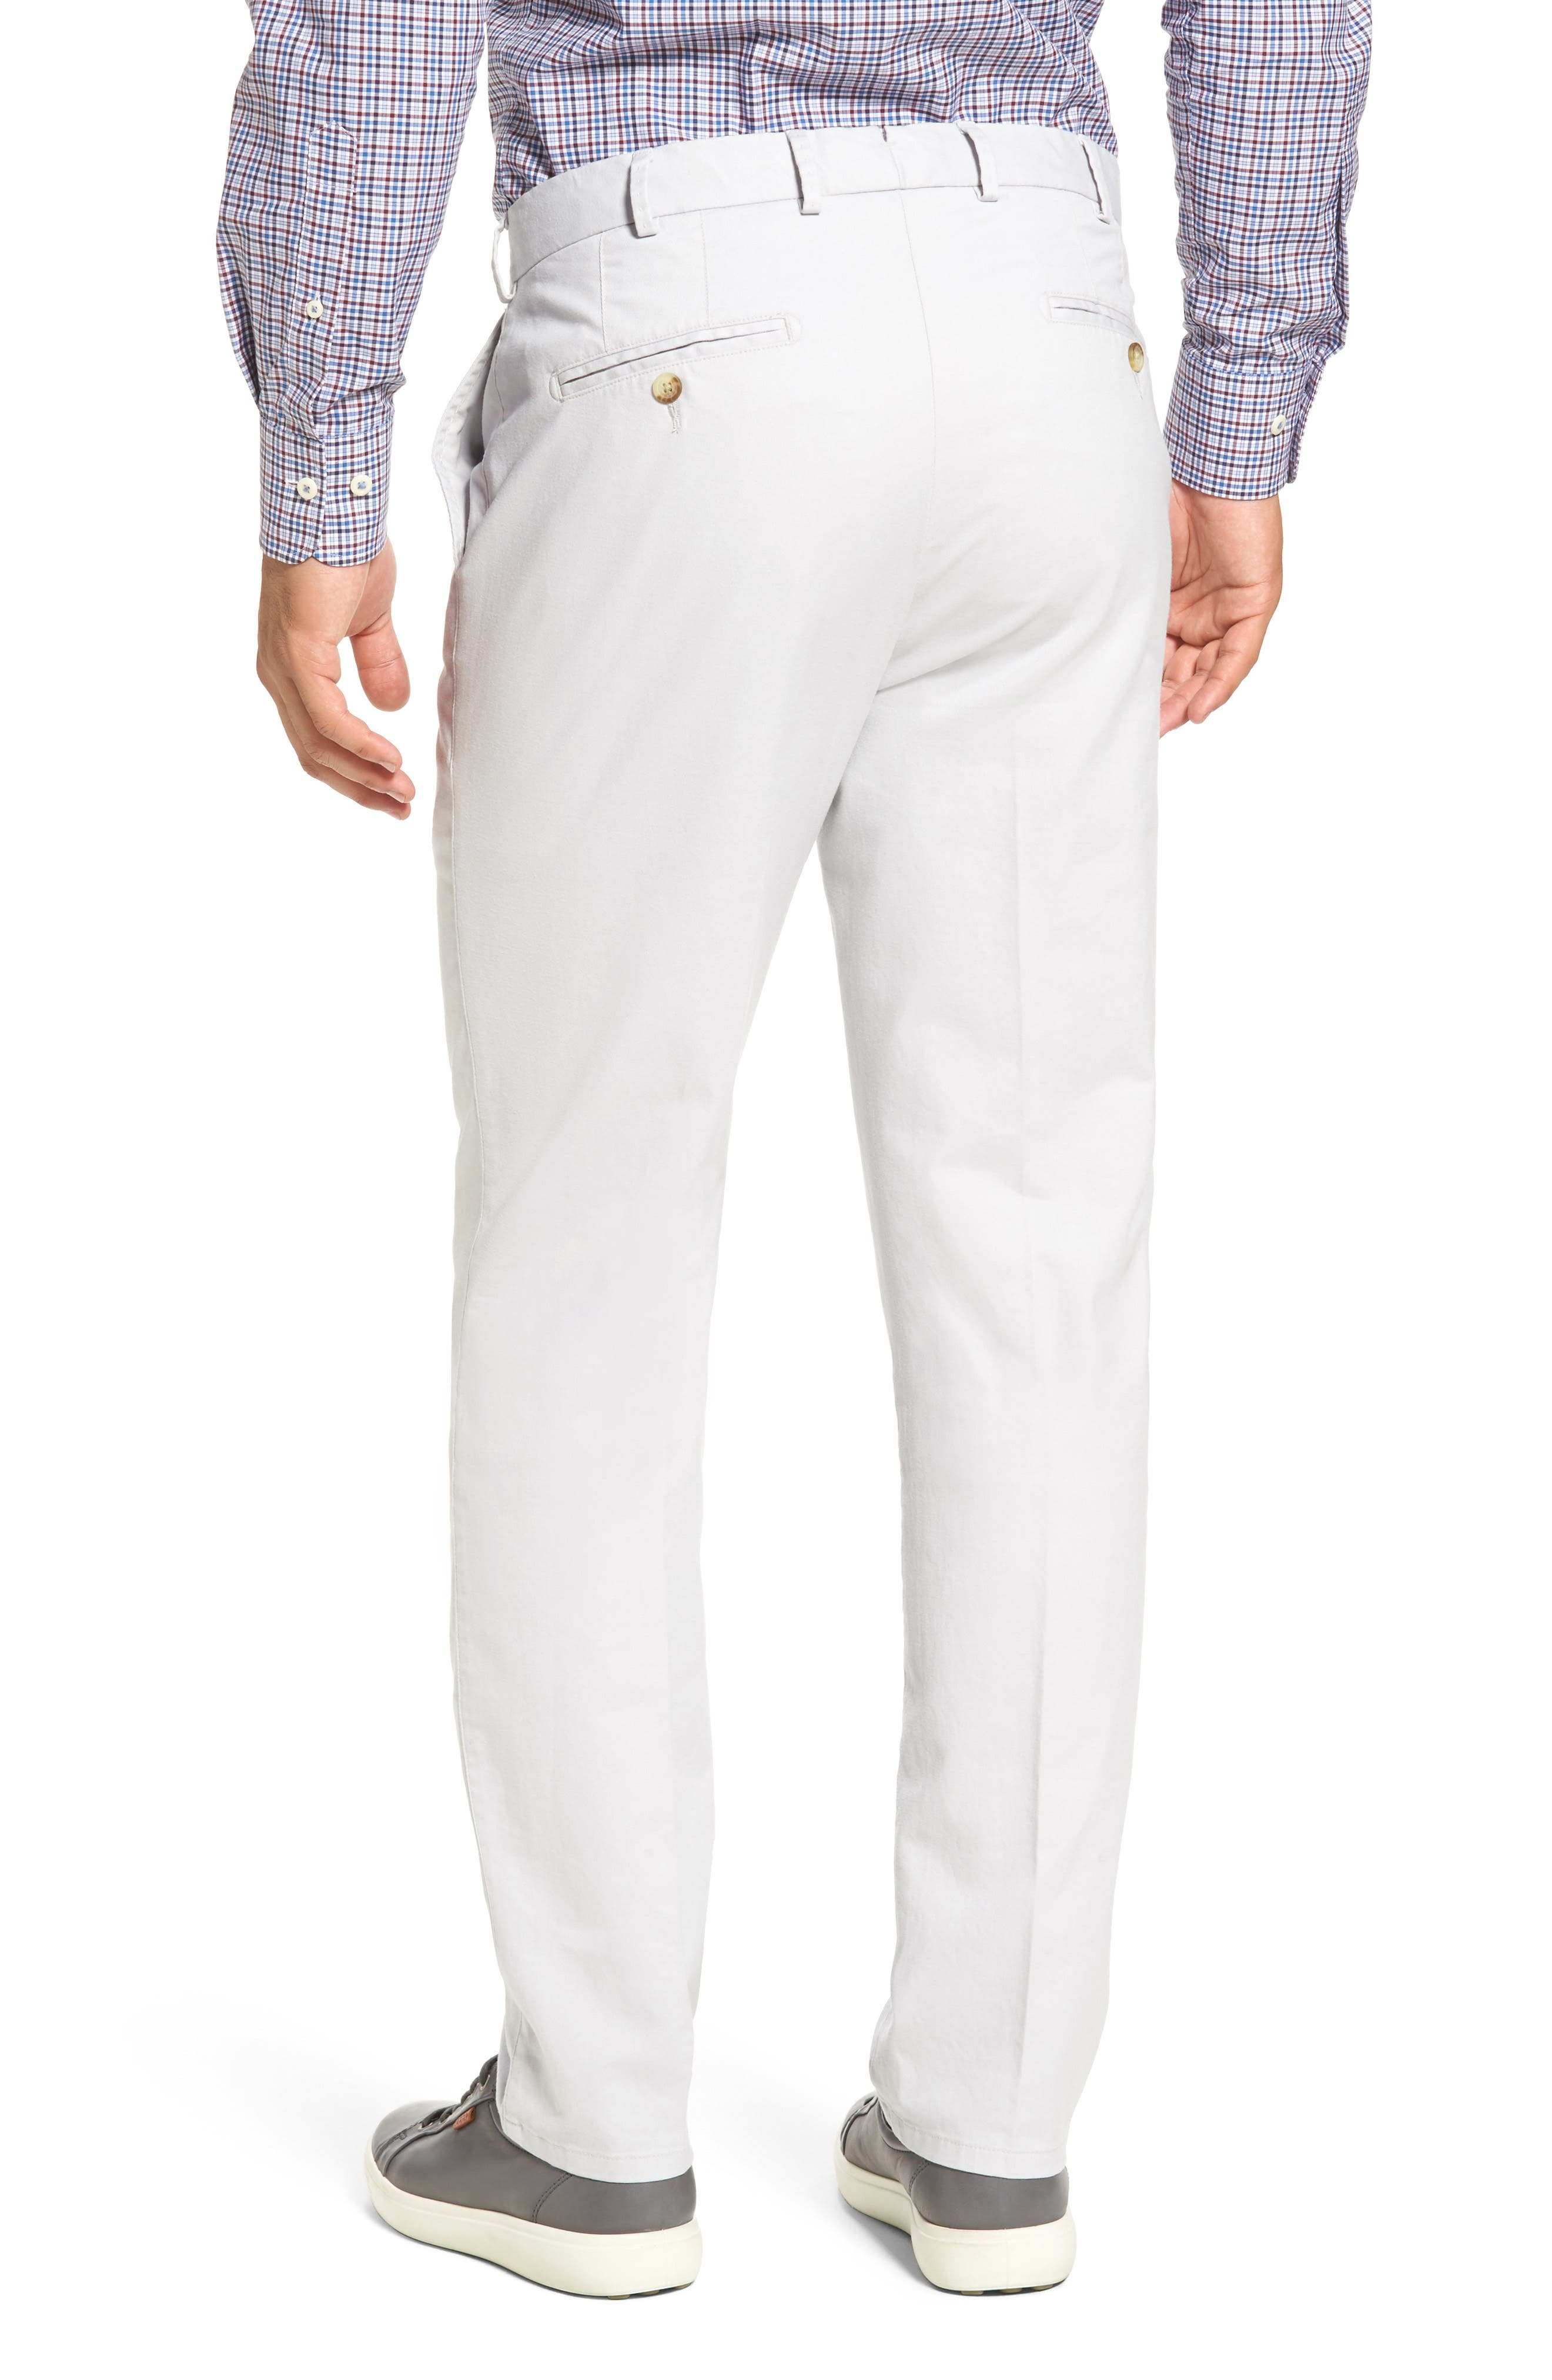 PETER MILLAR, Twill Pants, Alternate thumbnail 2, color, 050